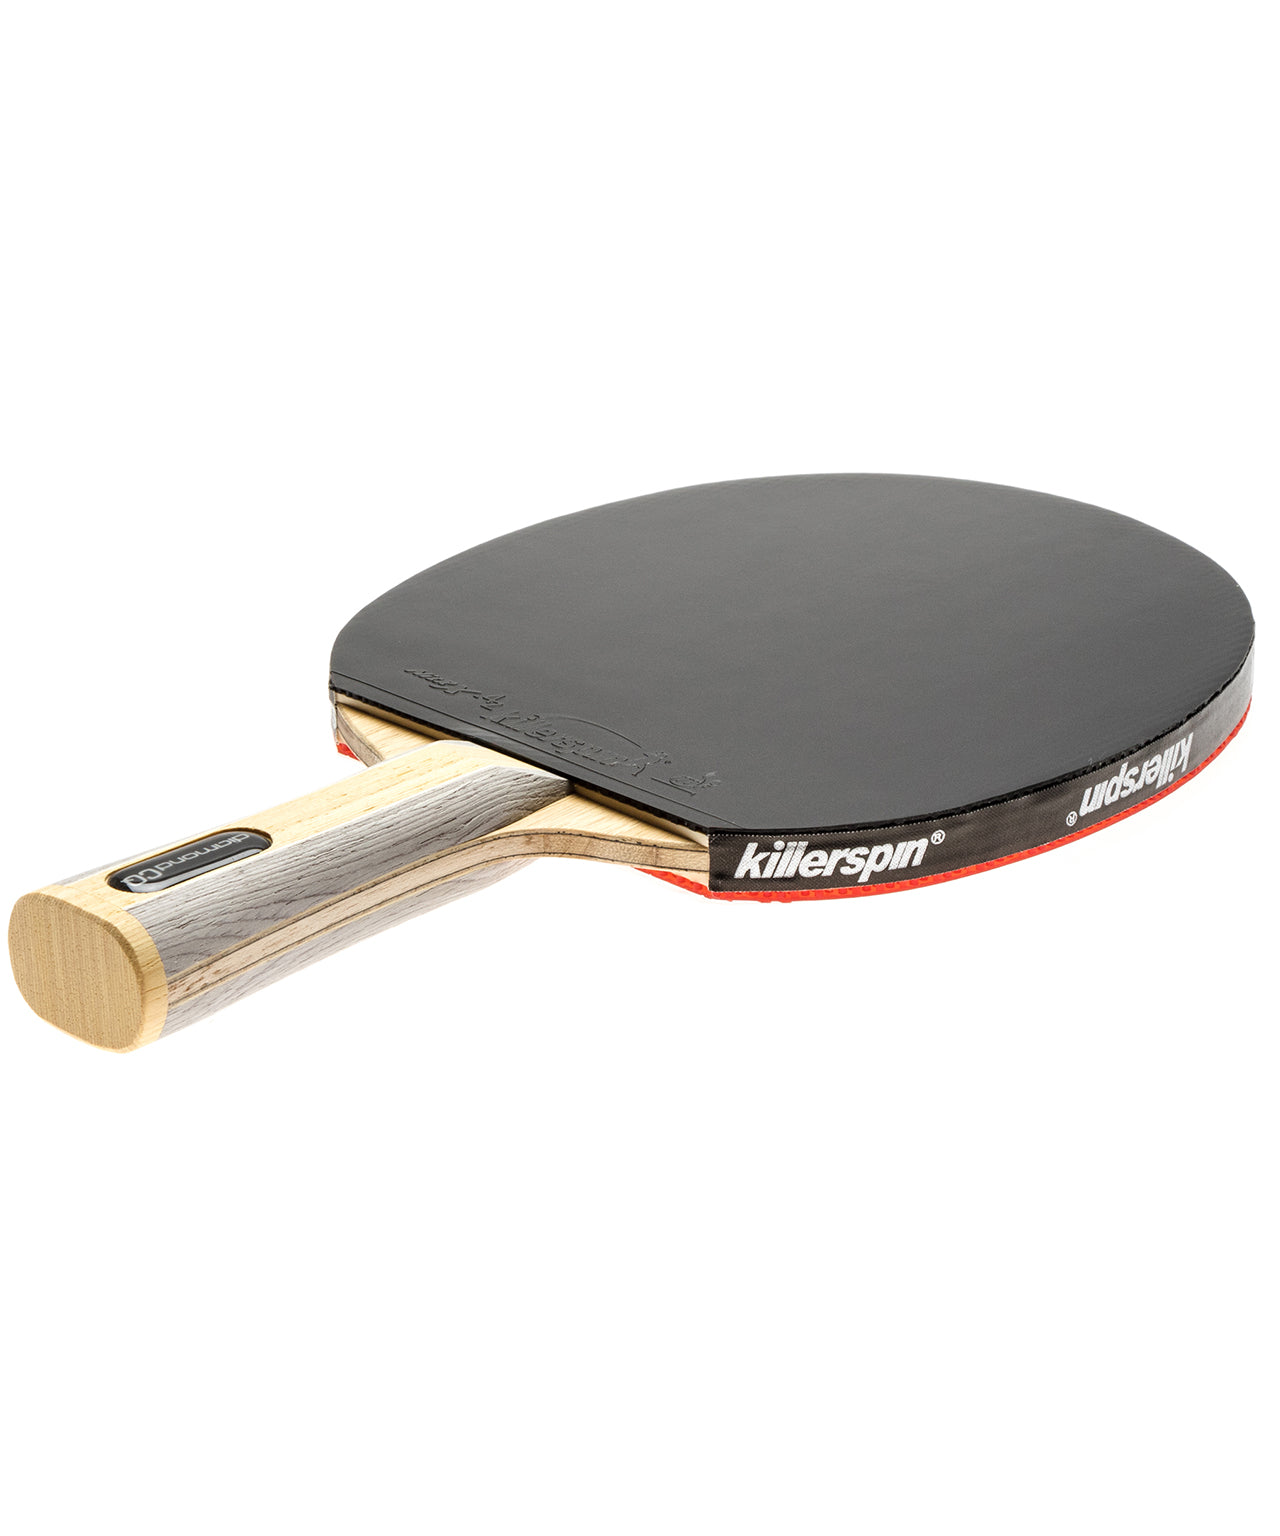 Killerspin Table Tennis Racket Diamond CQ - Flared Black Rubber